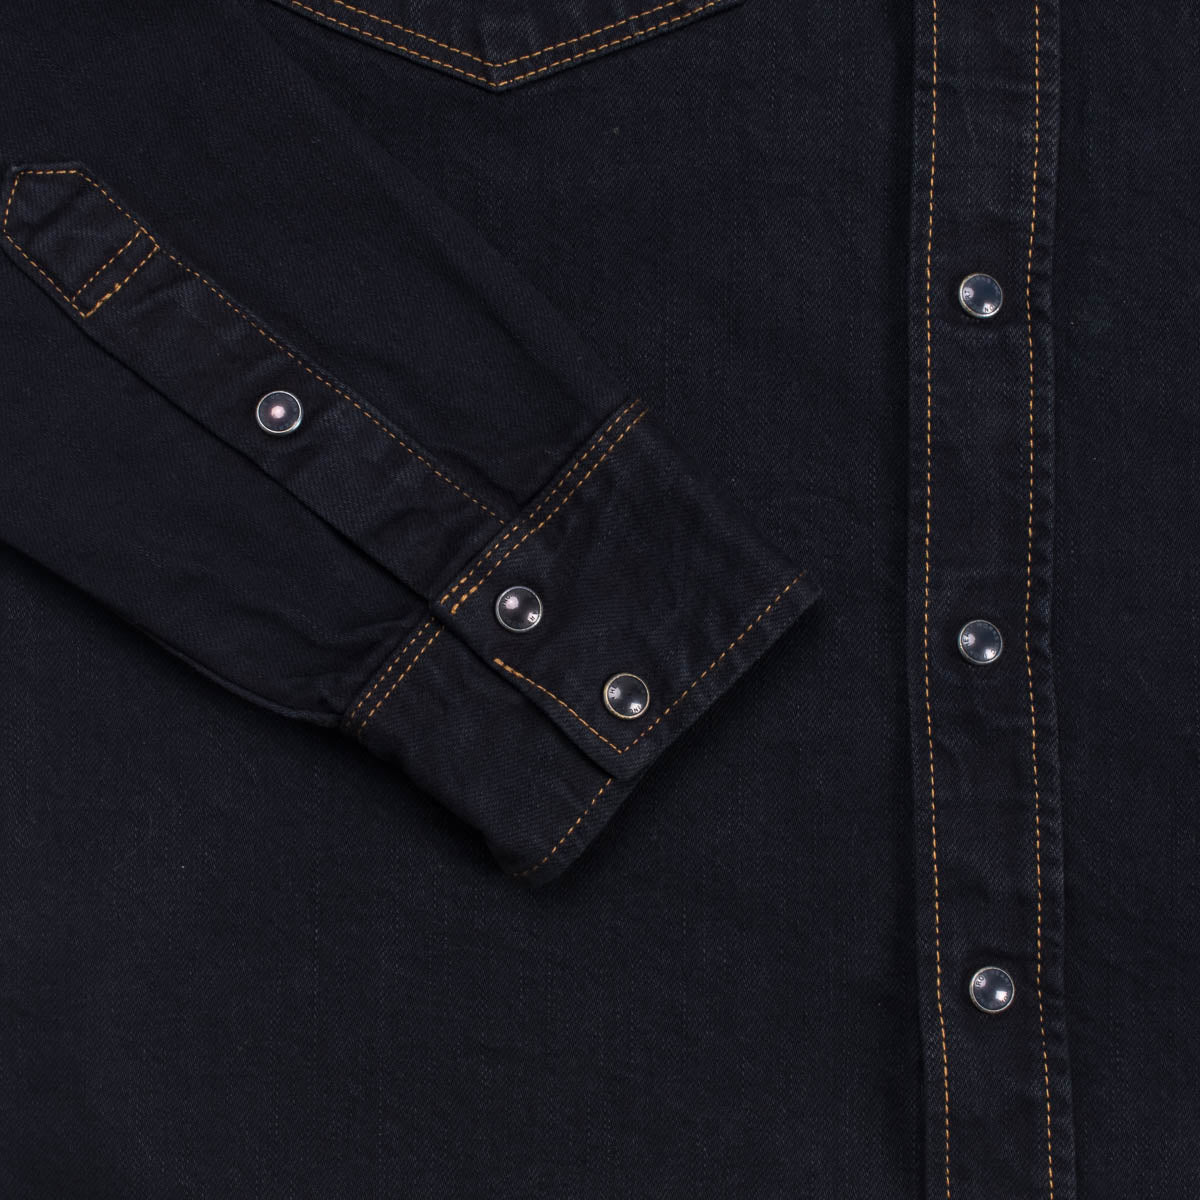 IHSH-33B - 12oz Denim Western Shirt Indigo Overdyed Black